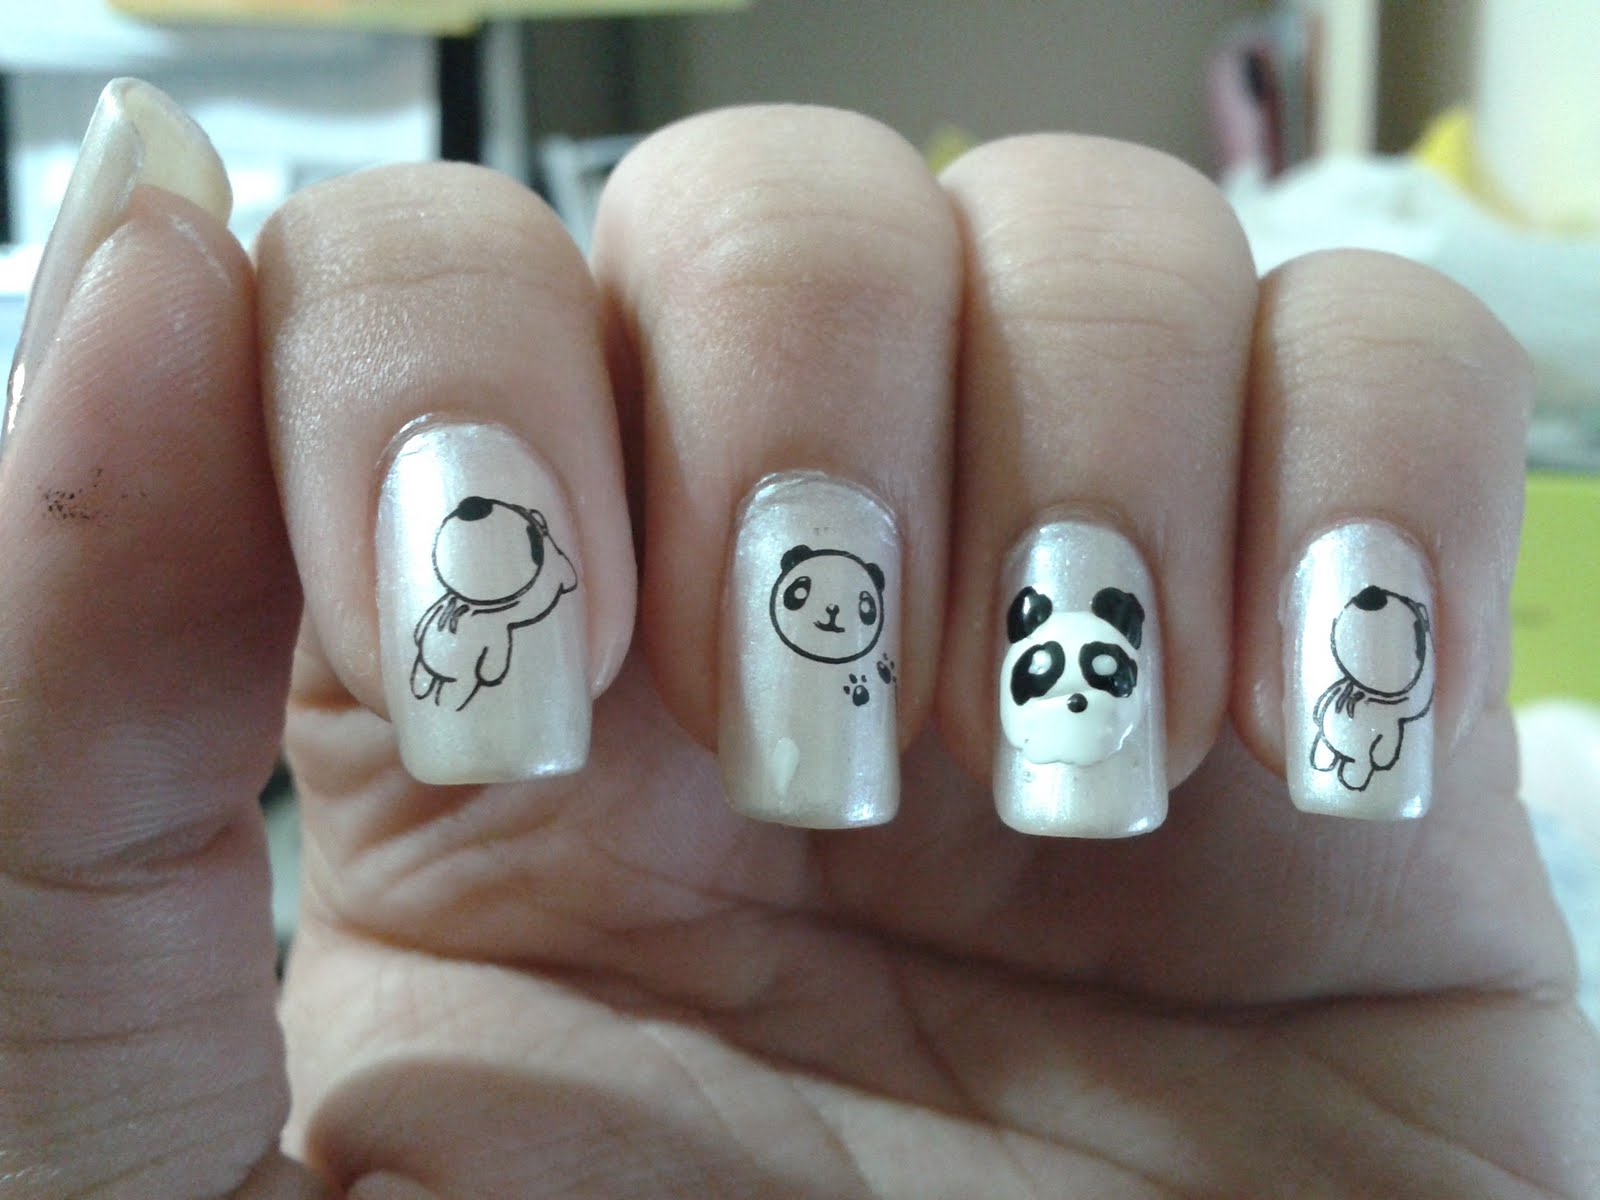 Lust For Nails Panda Nail Art The Face Shop Pp401 With Konad M56 S10 And M10